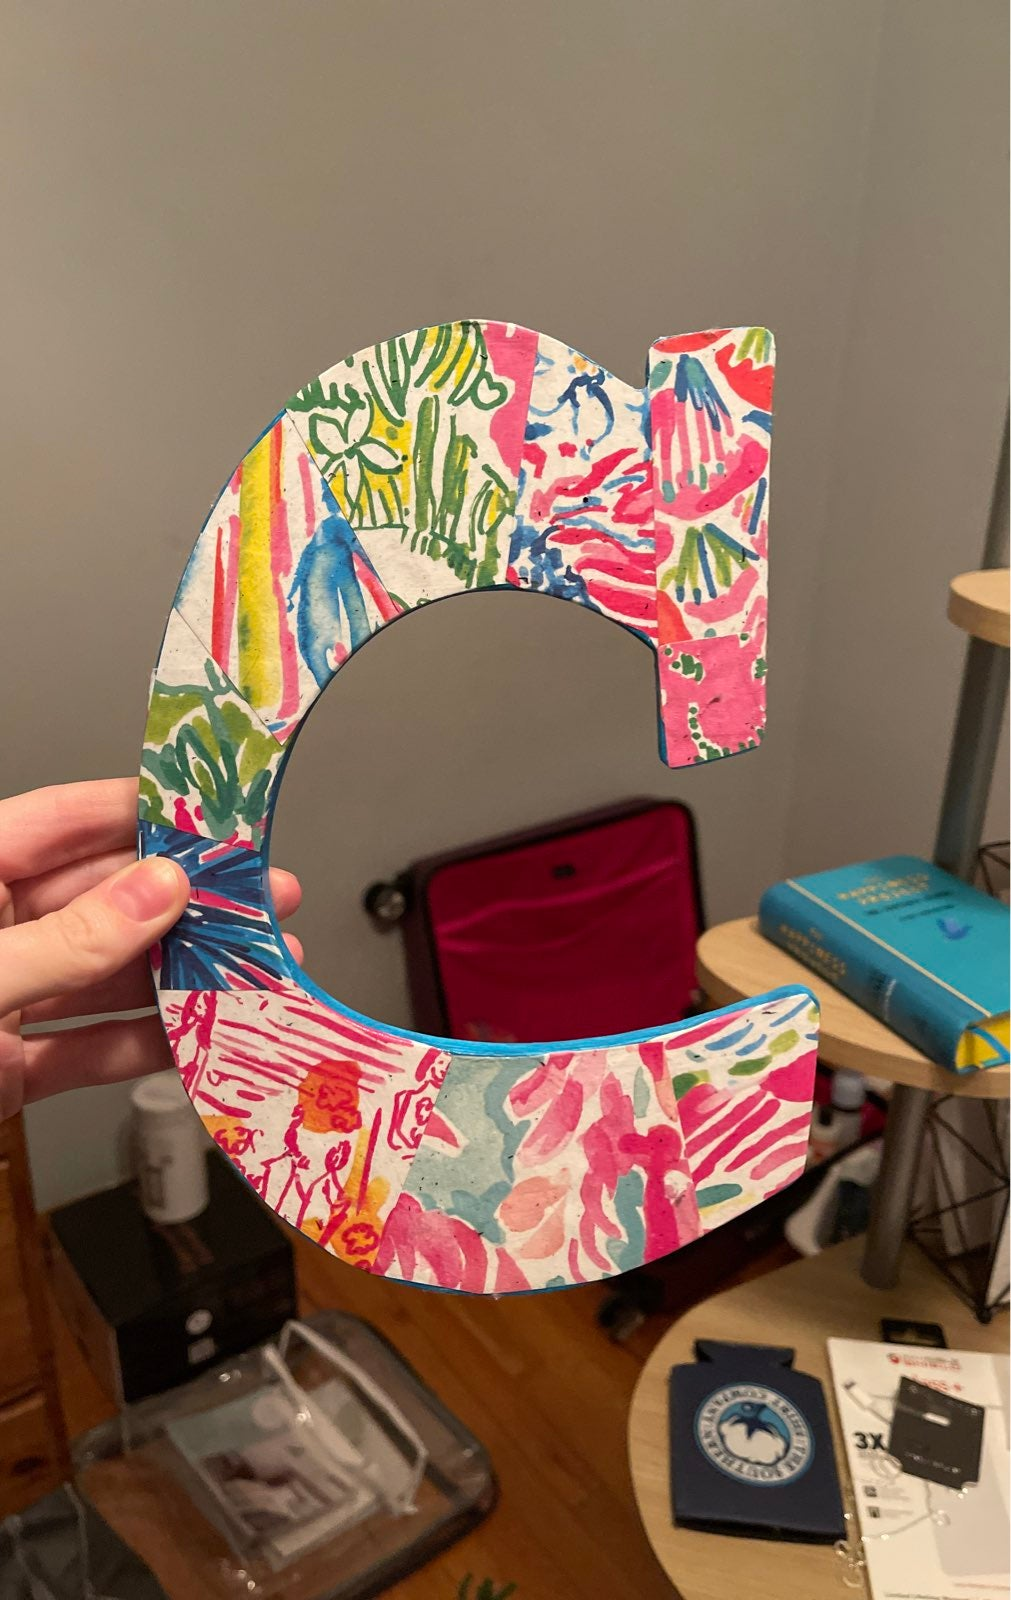 Home accent -Lilly Pullitzer inspired